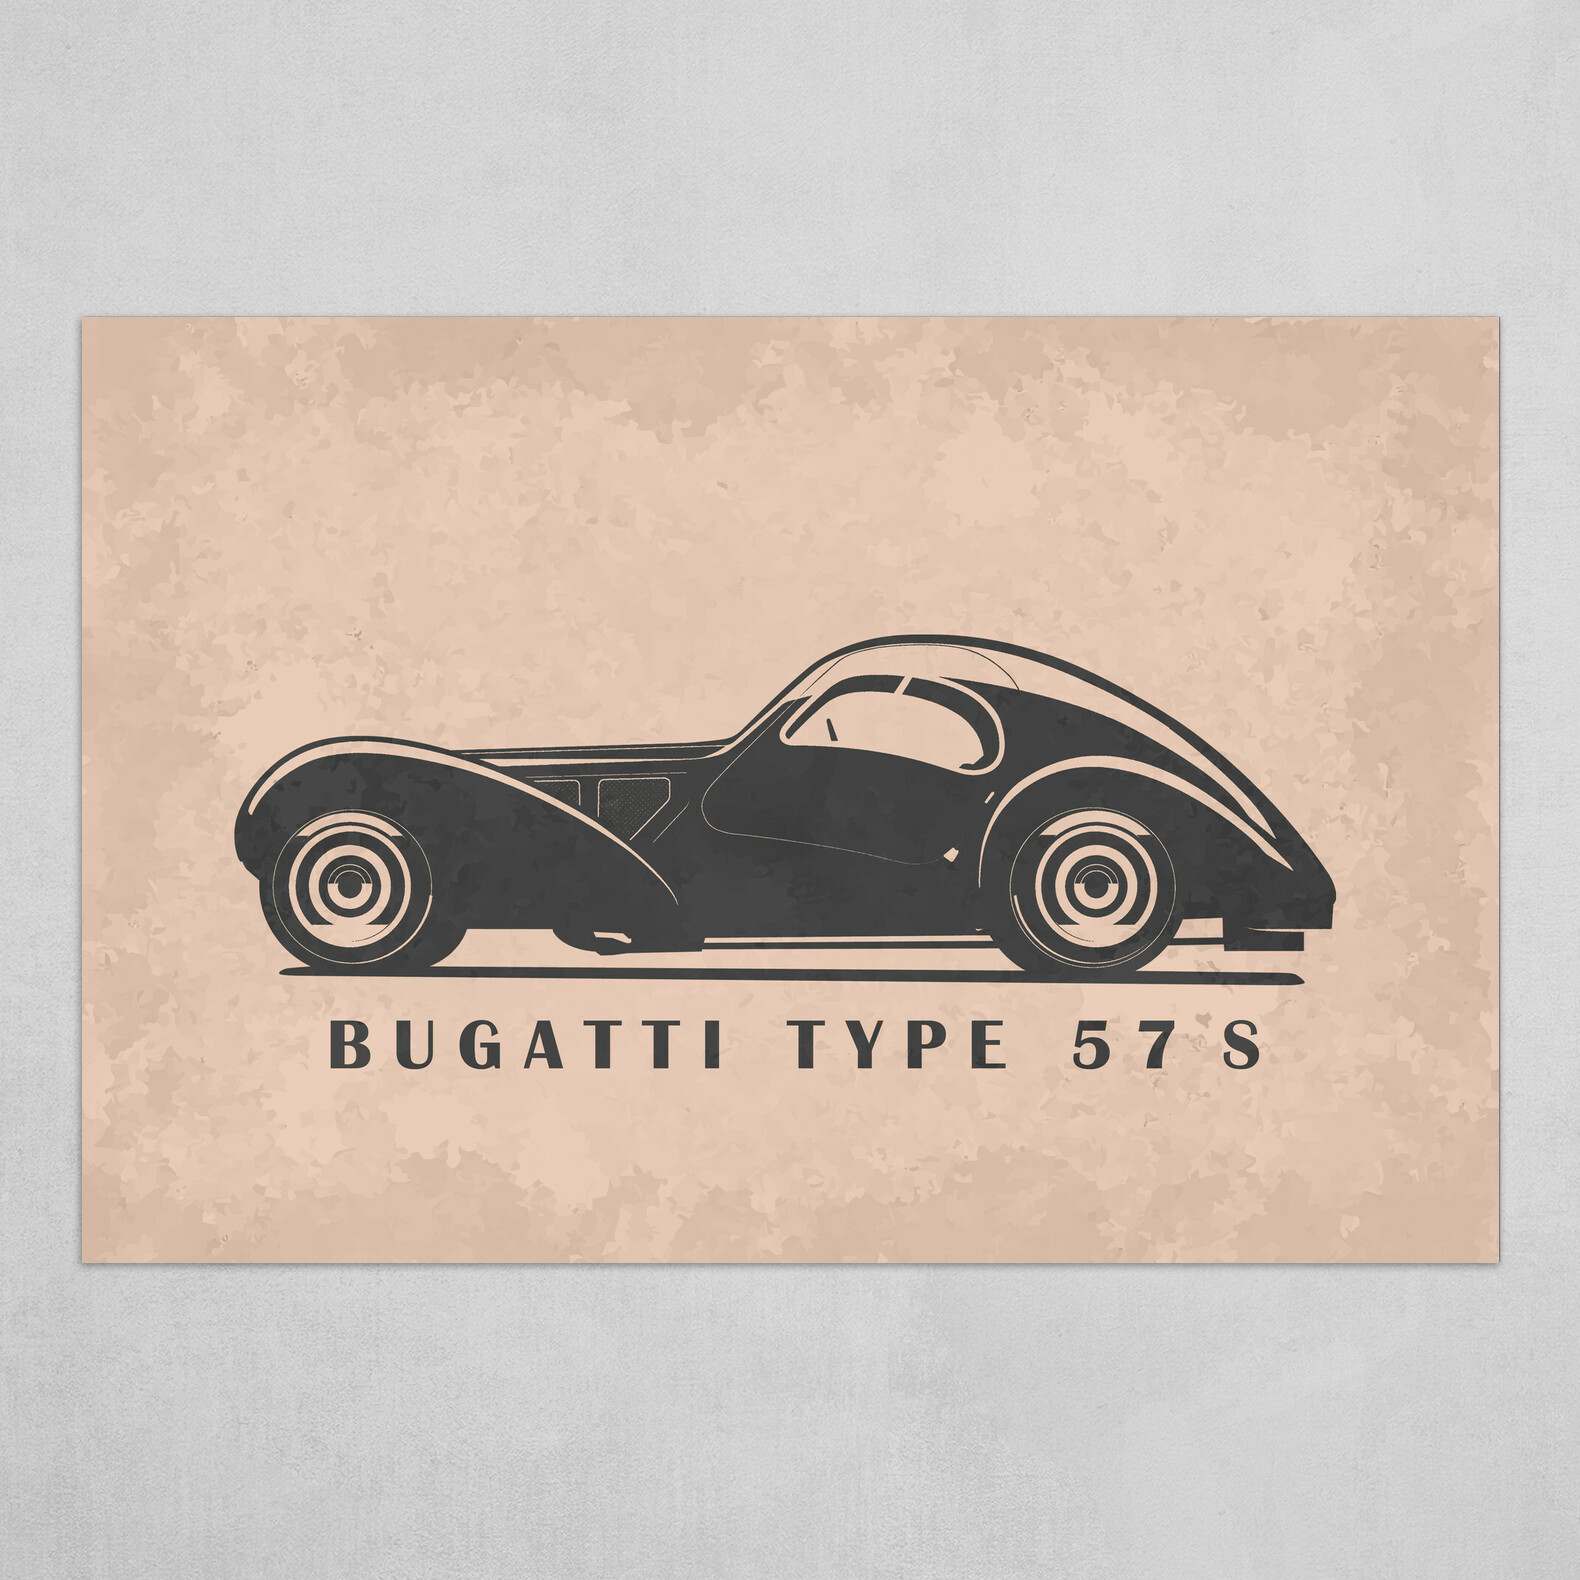 Bugatti Type 57 S Car Collection Art Poster By Design Wood